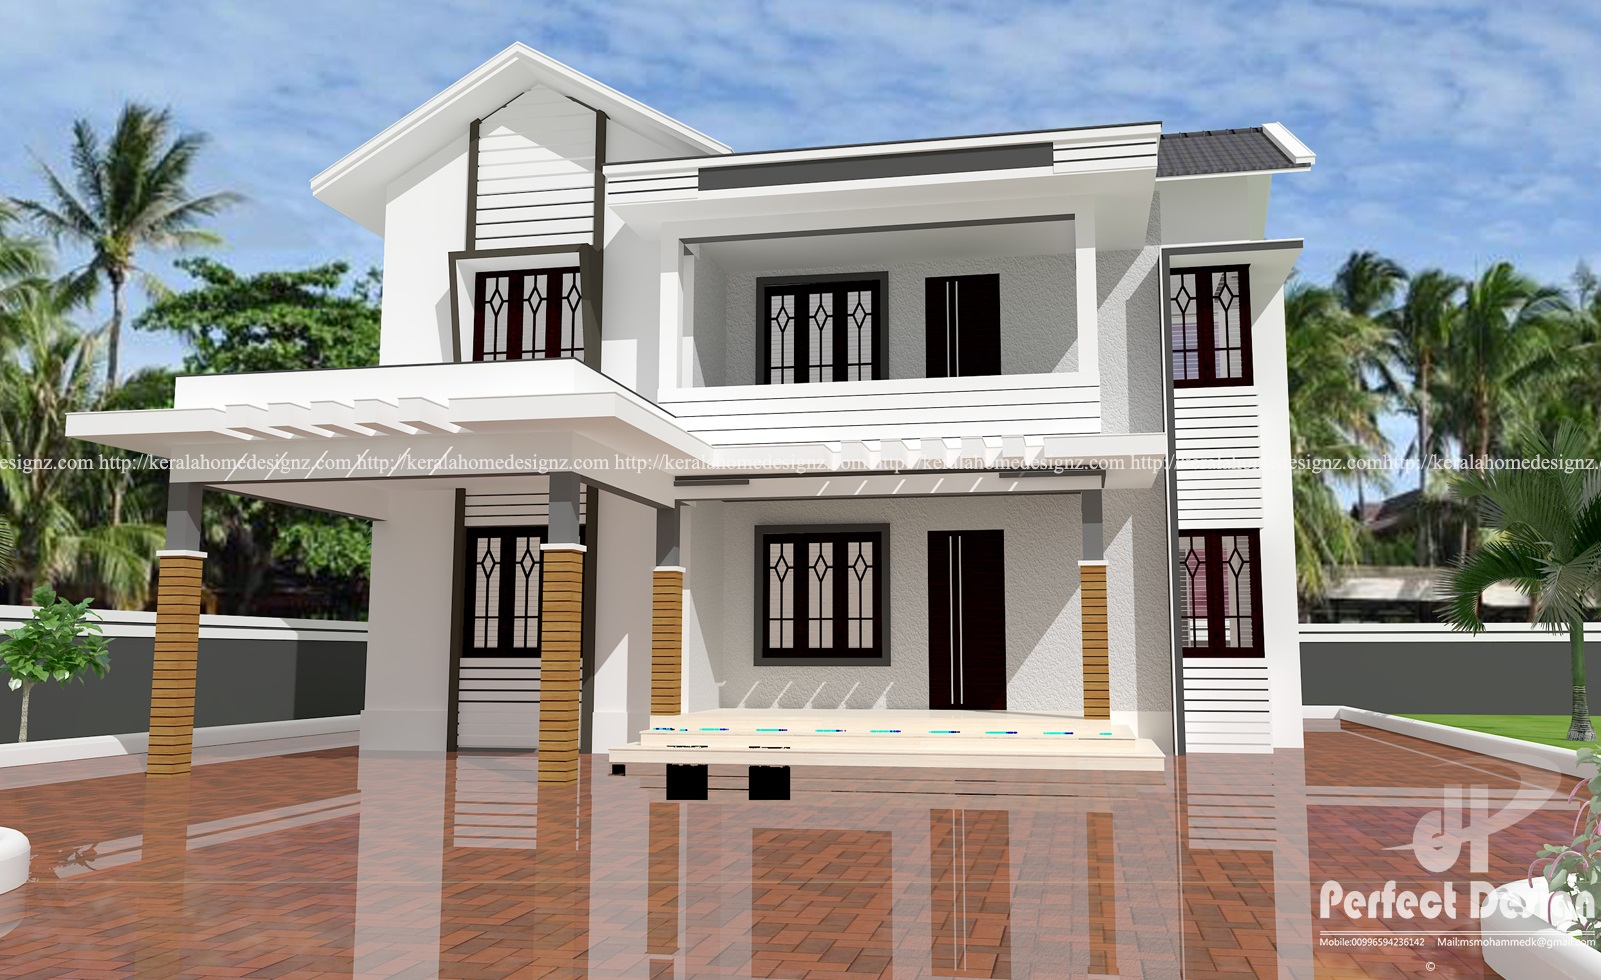 4 Bedroom Mixed Roof Home Part - 42: FT DOUBLE FLOOR HOME DESIGN